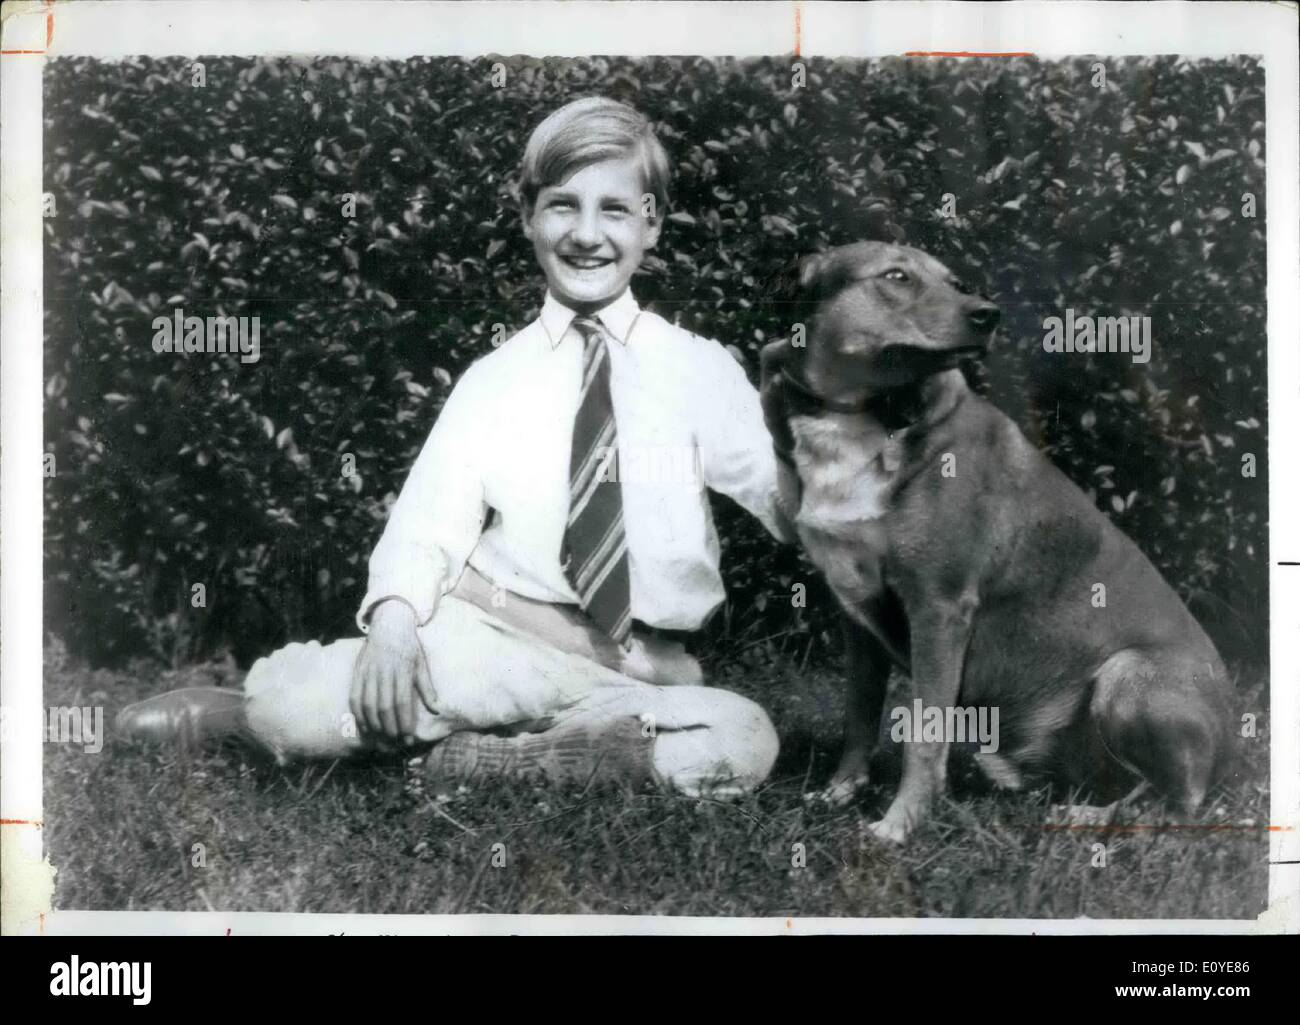 Jan. 01, 1970 - Spiro Agnew, who will take office as U.S. Vice President in January 1969 is shown at about age 12, with his dog. Agnew was born in Baltimore, Maryland, on November 9, 19718. - Stock Image